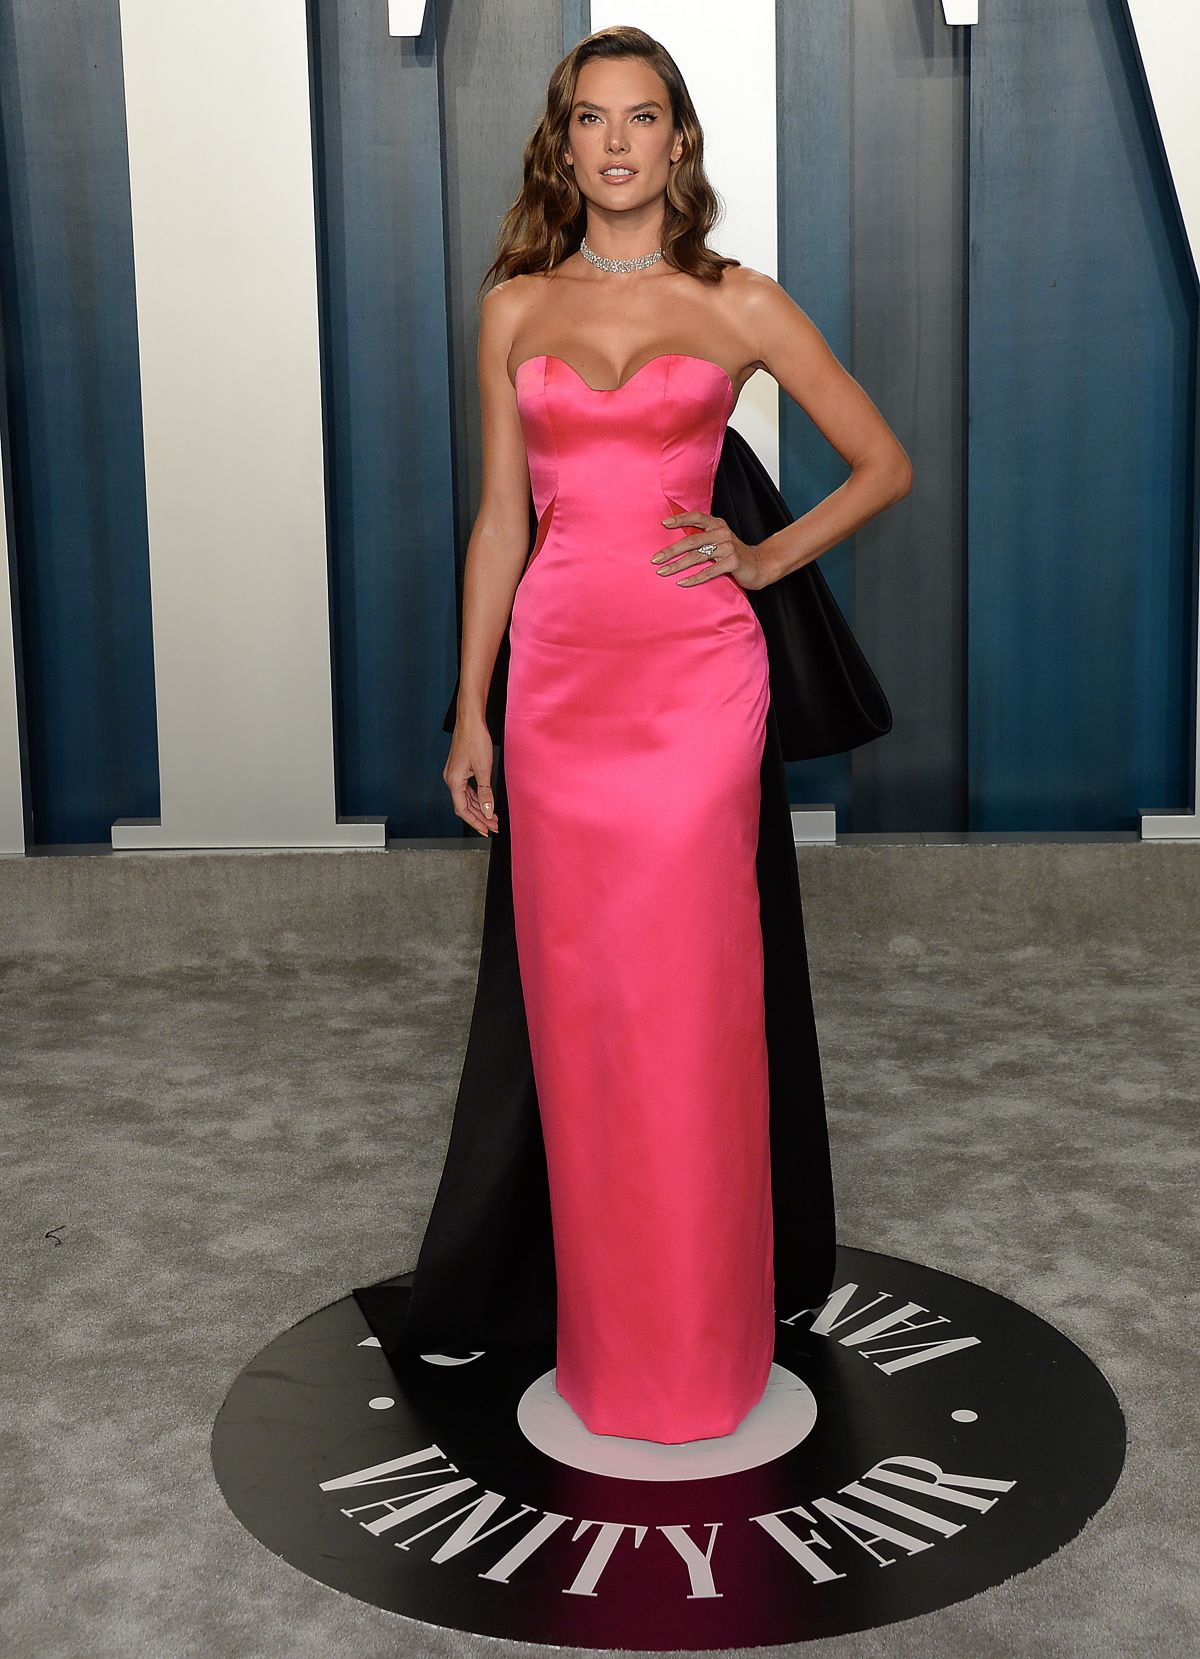 alessandra-ambrosio-in-armani-prive-2020-vanity-fair-oscar-party